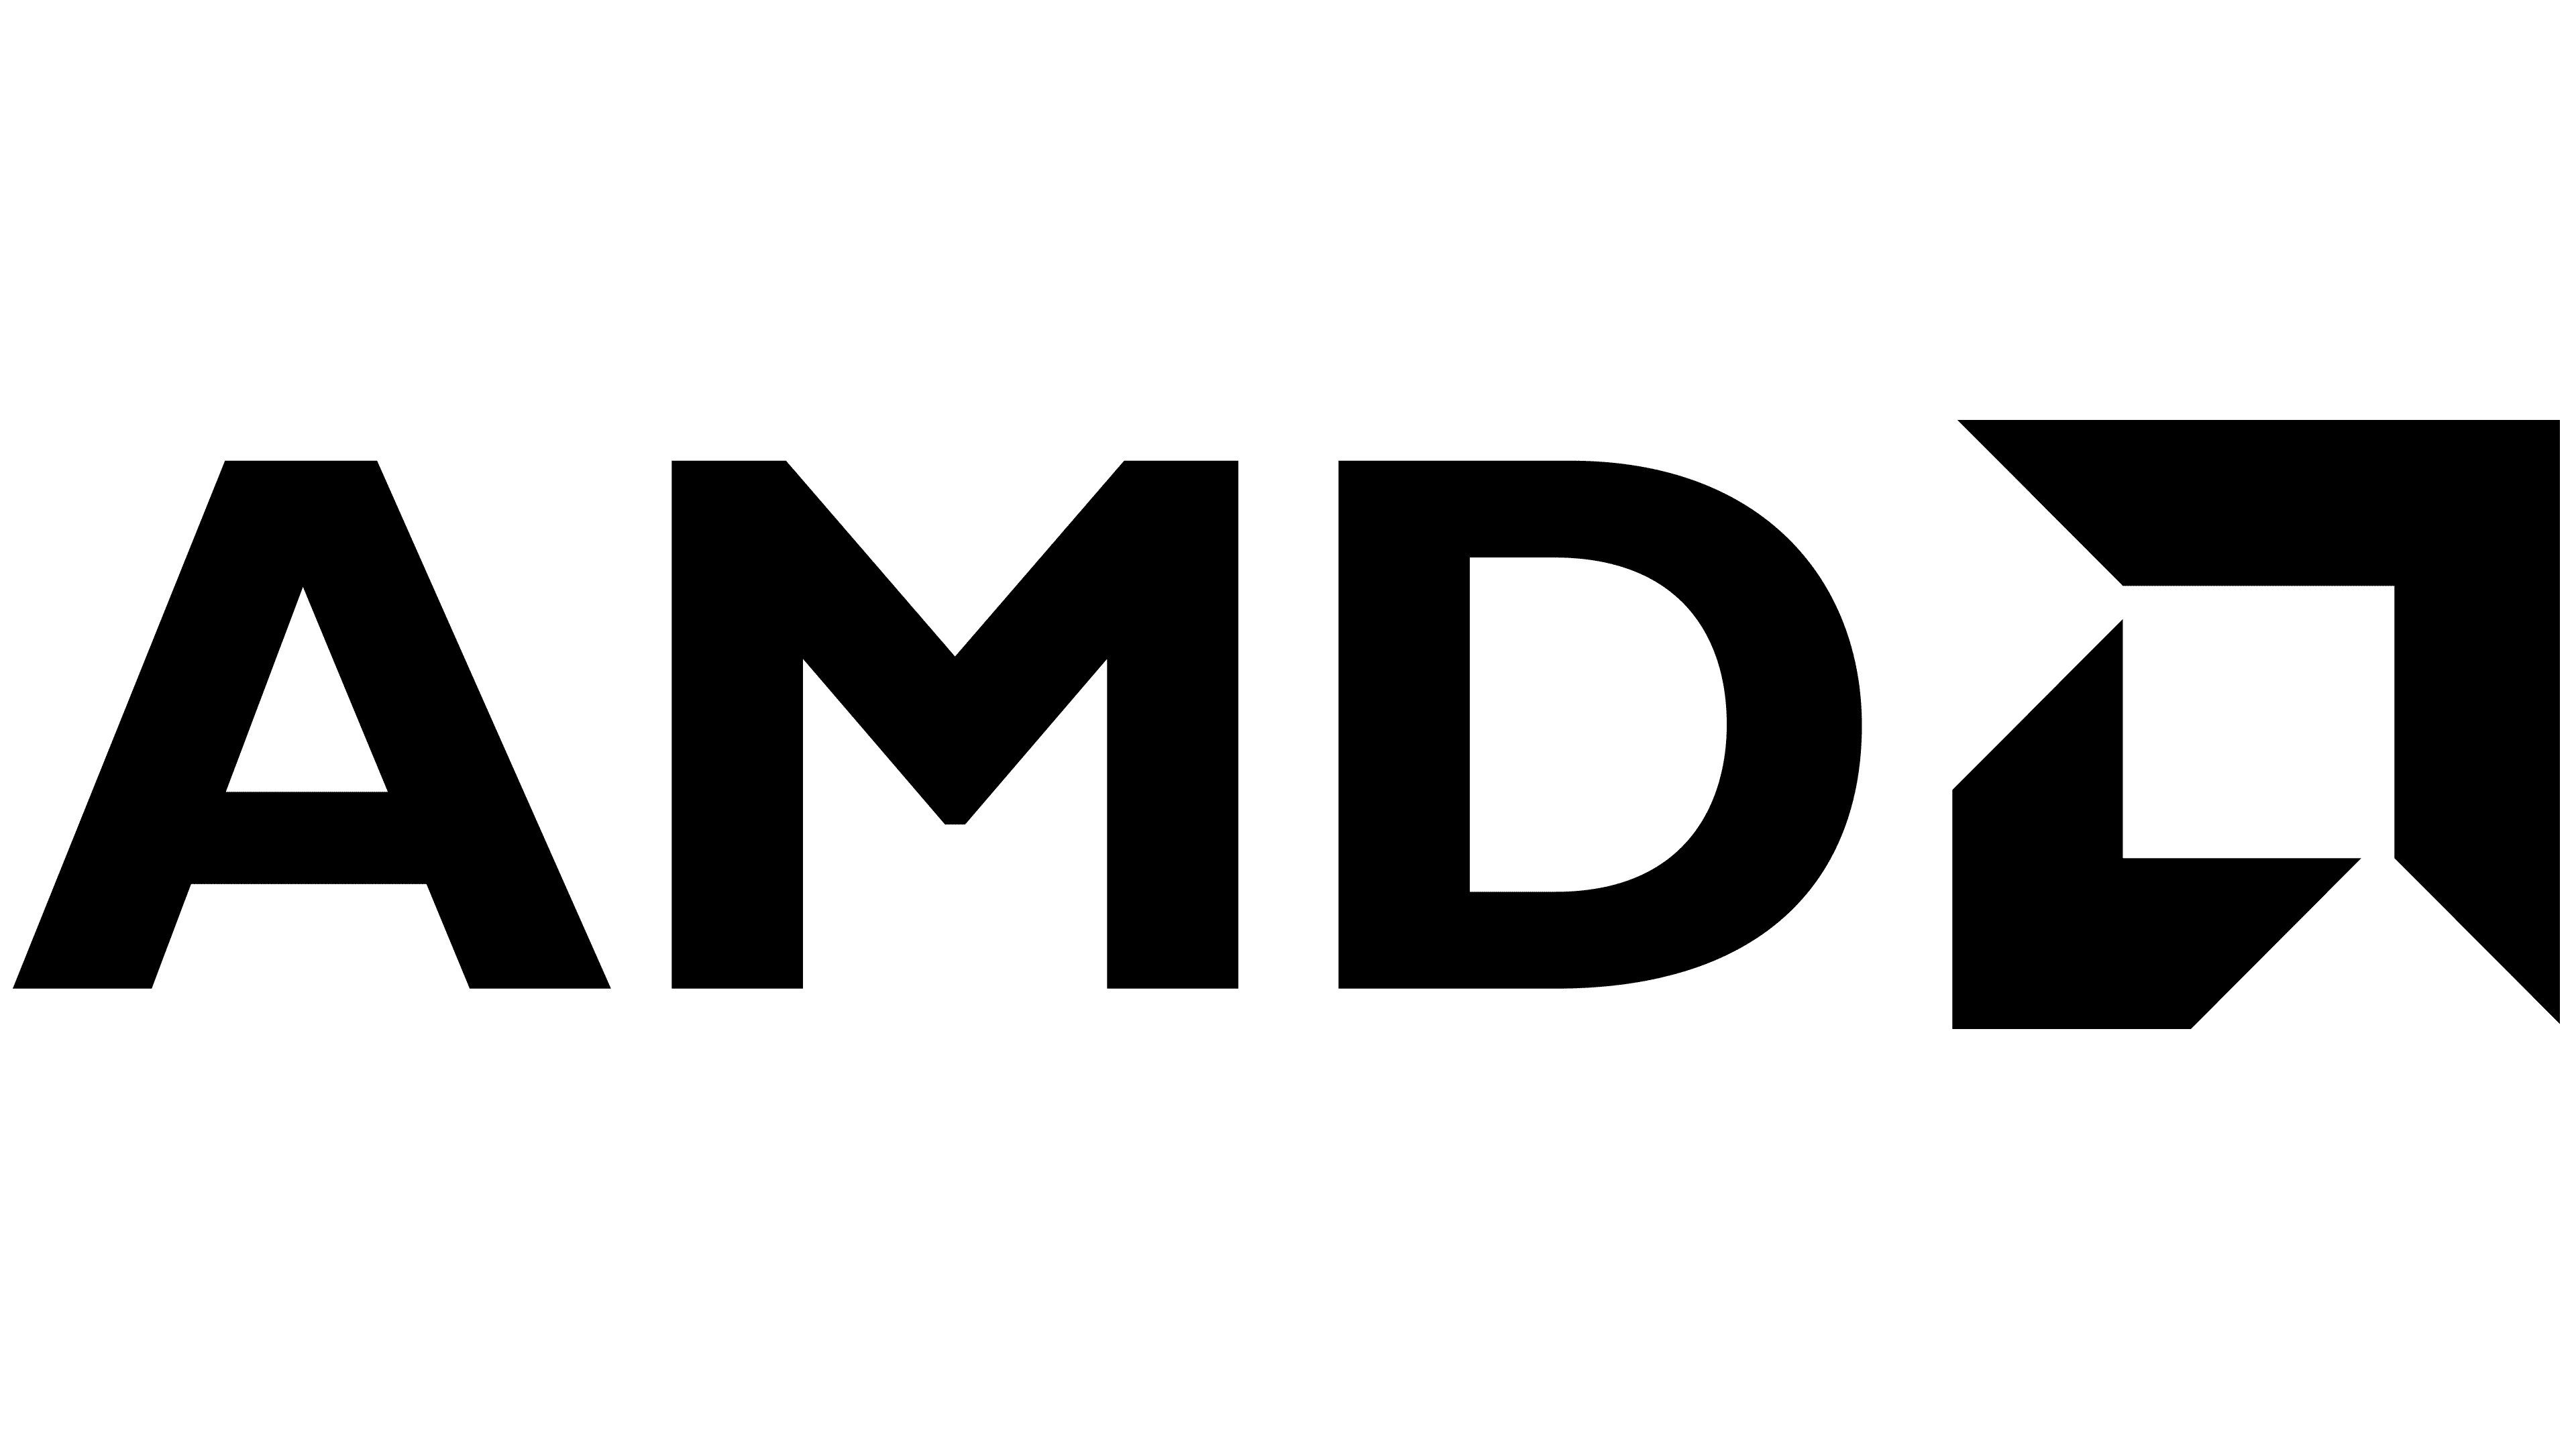 Amd Logo The Most Famous Brands And Company Logos In The World